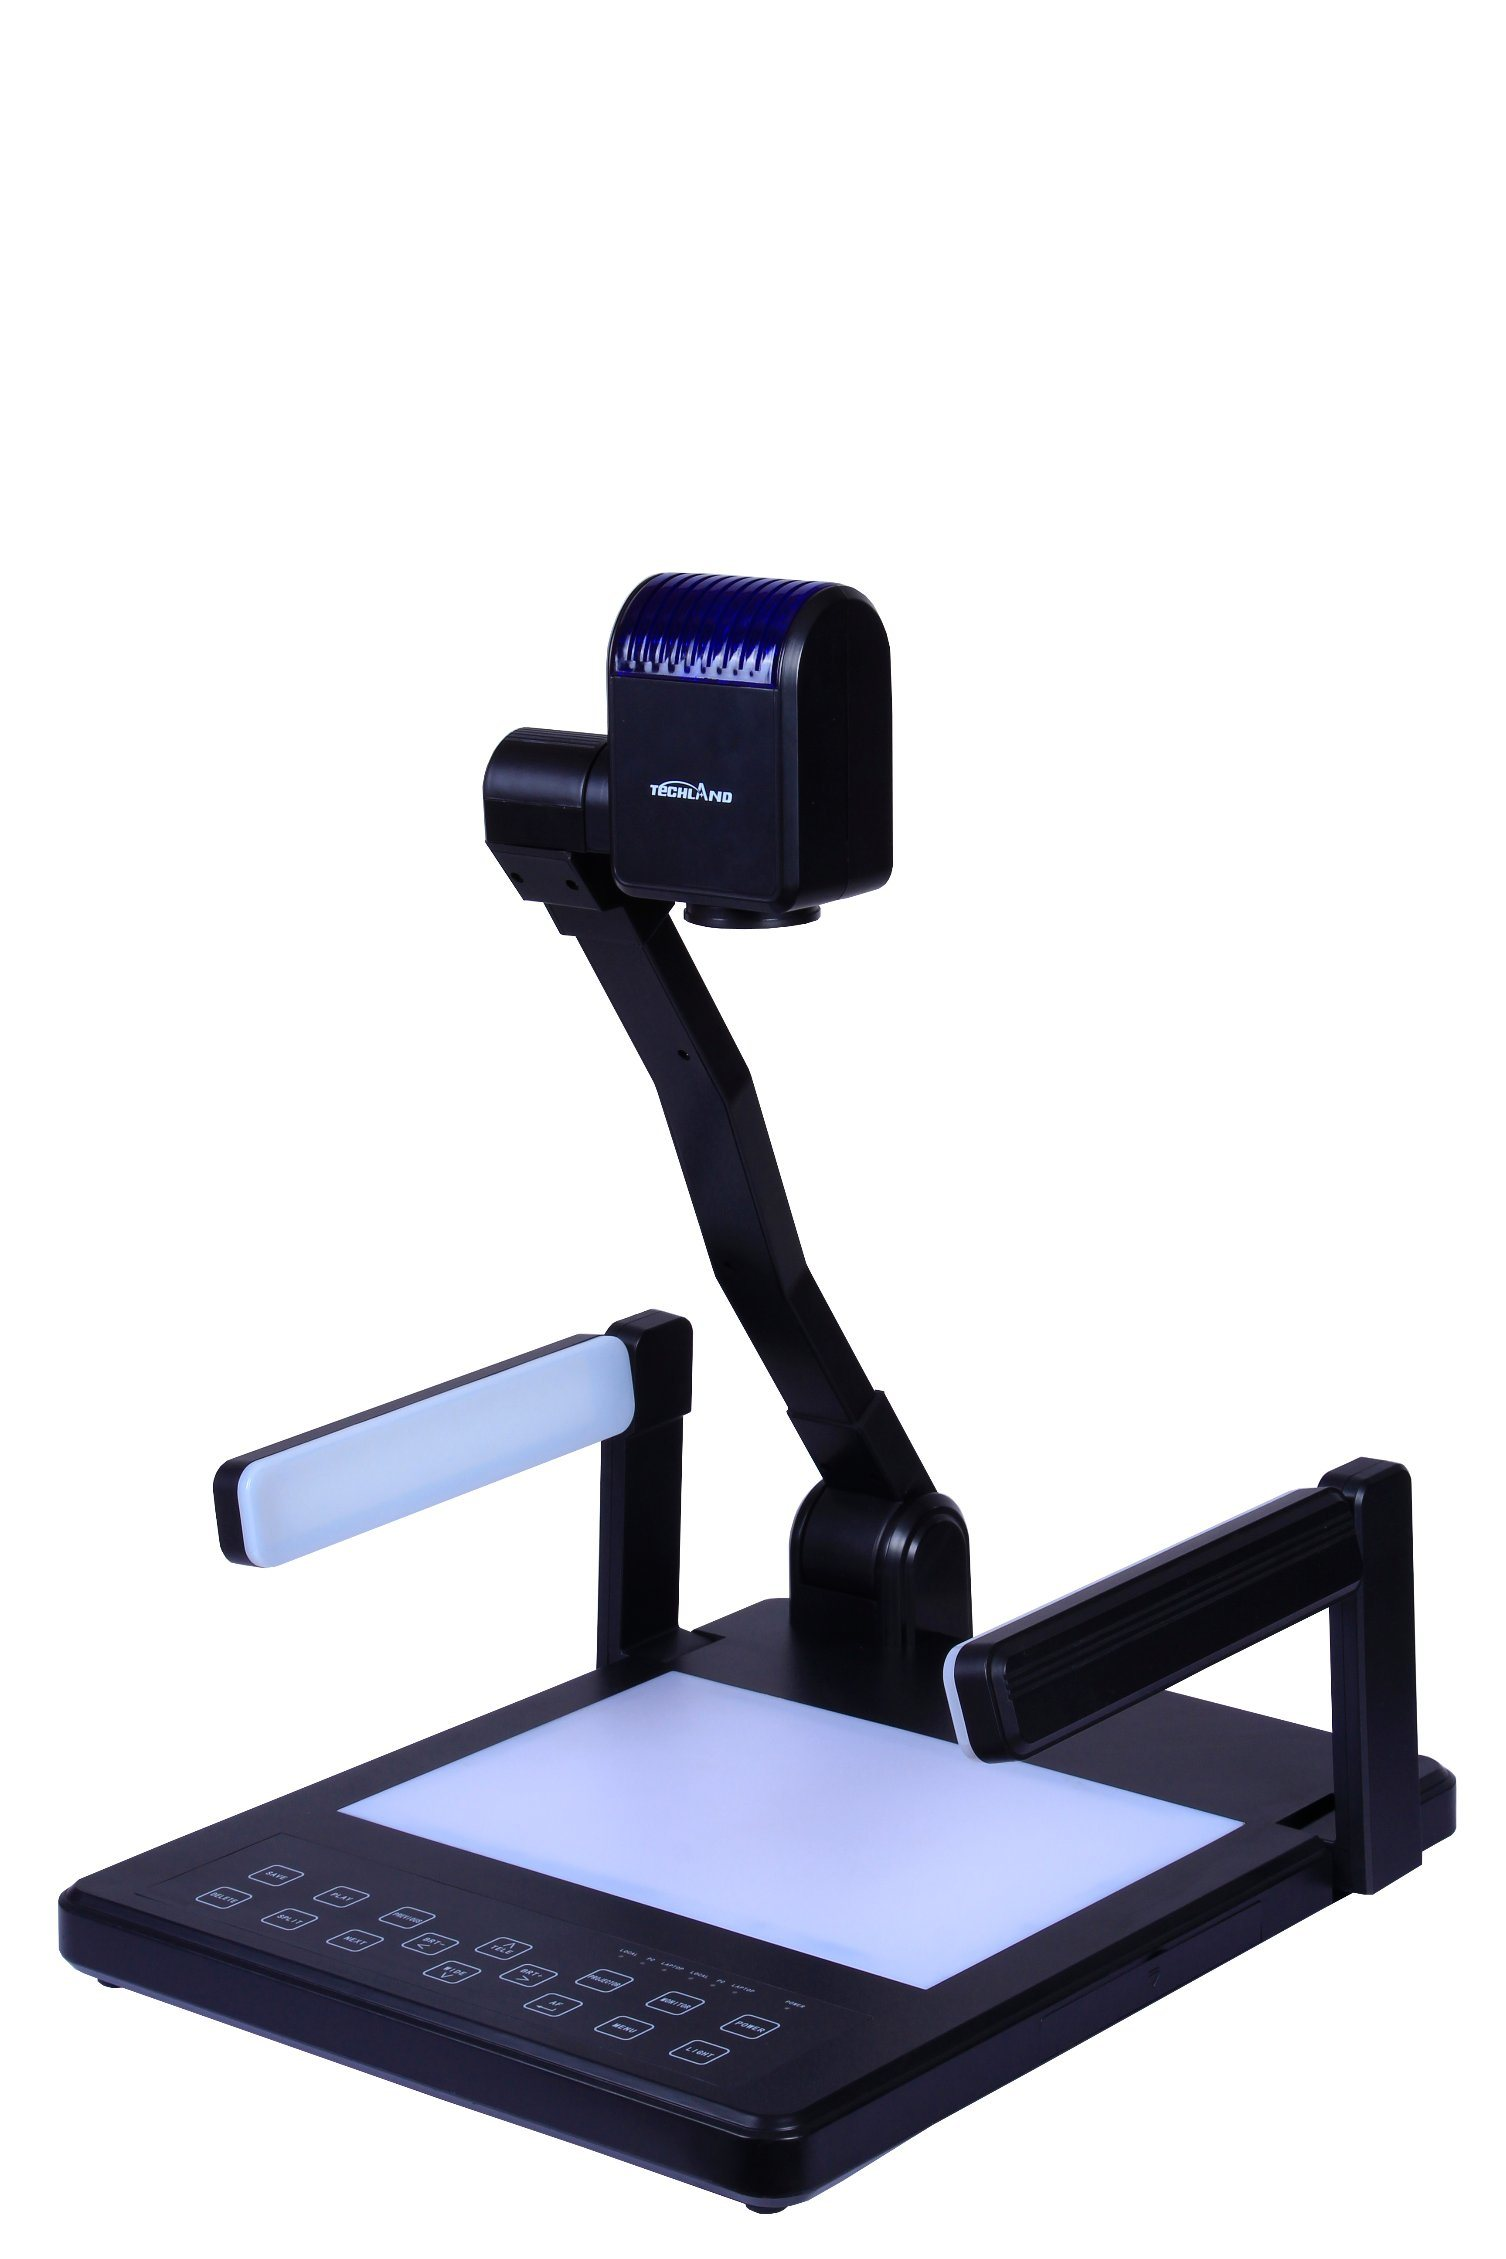 School Supply 3D Scanner Document Camera Desktop Visualizer